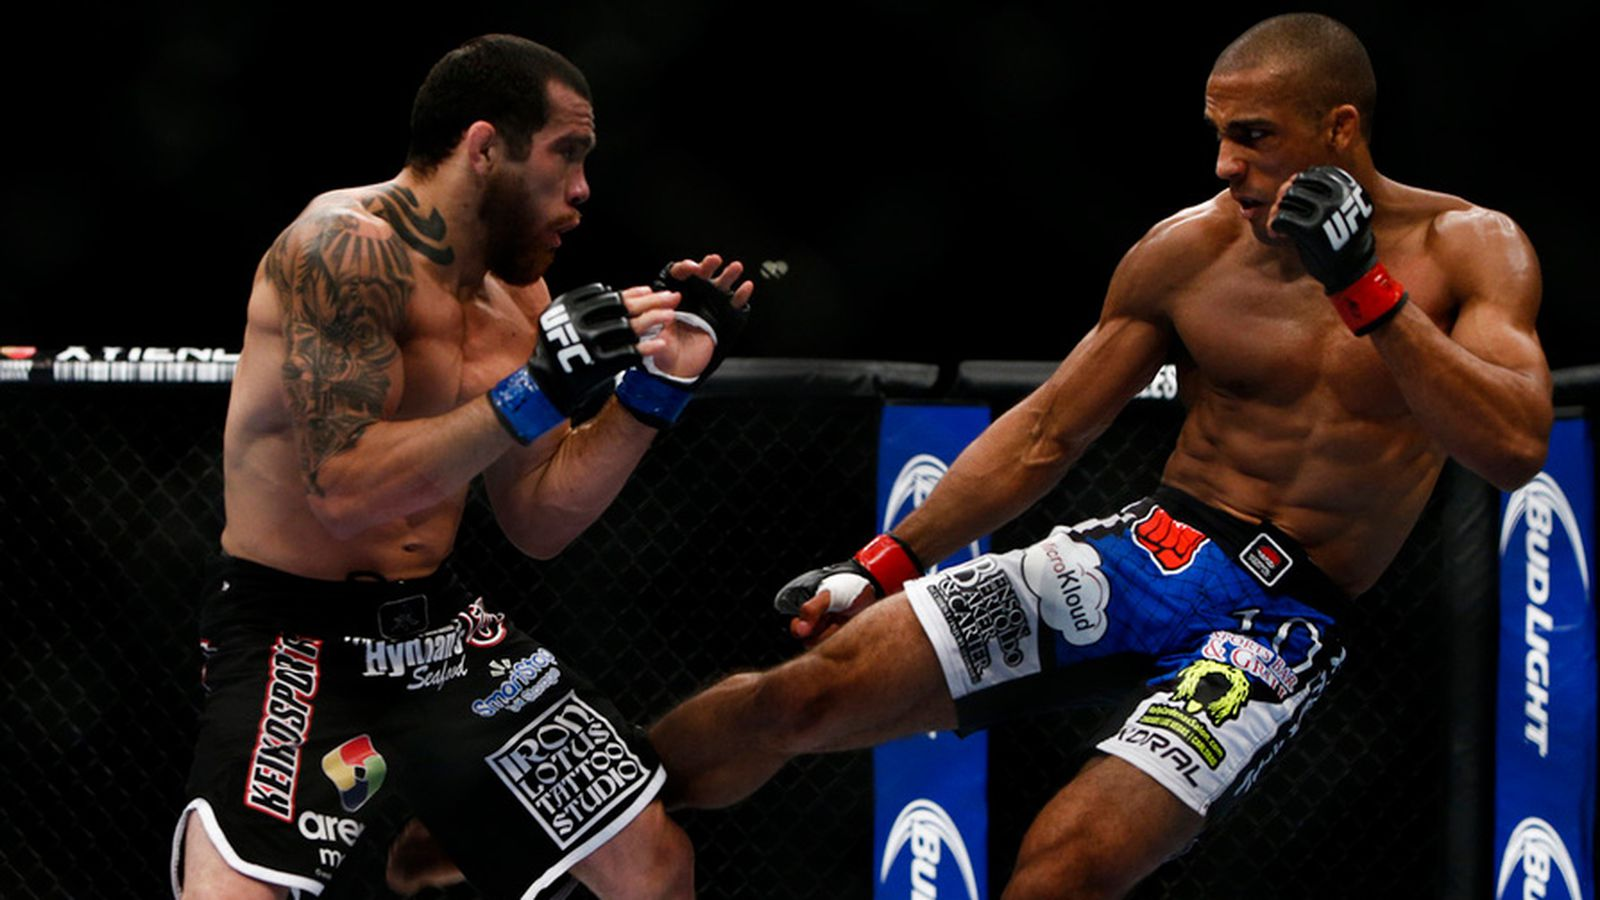 Edson Barboza believes he hasn't shown what he can do yet ...